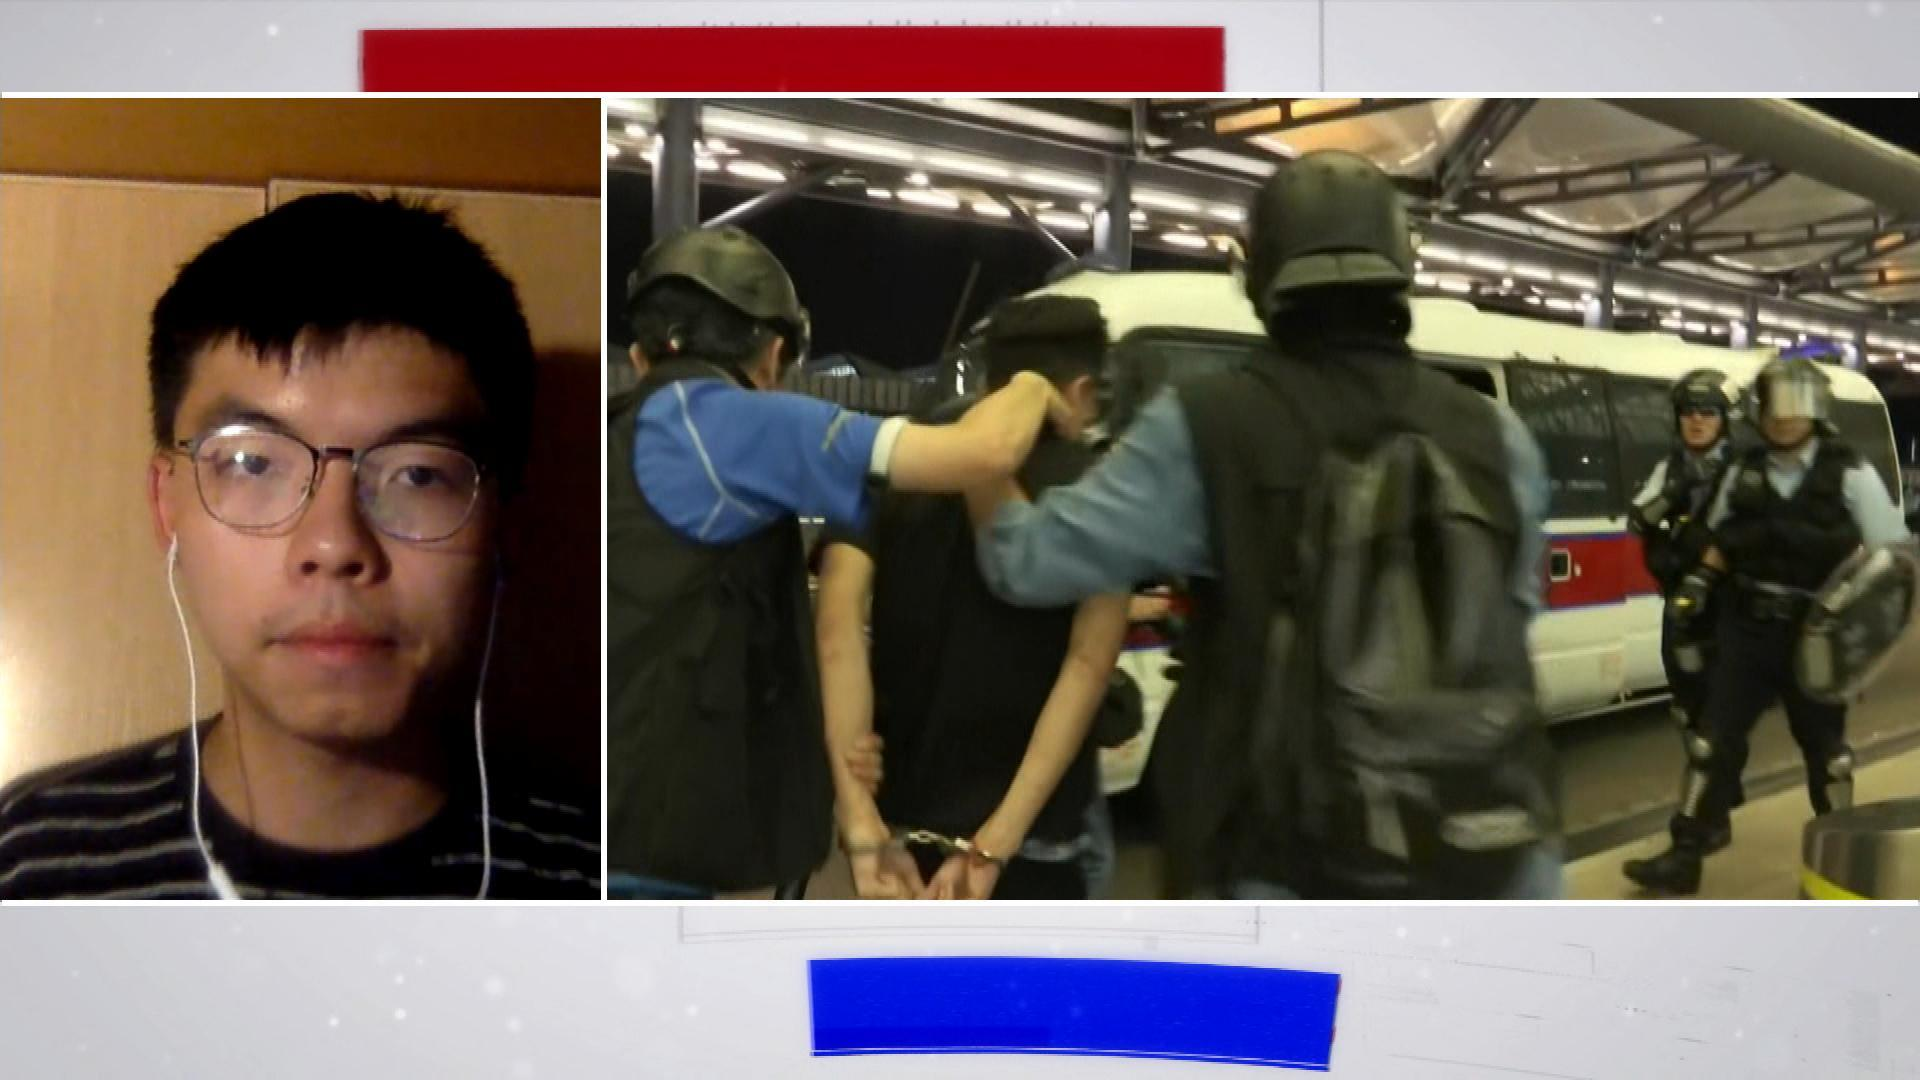 Pro-democracy activist: Hong Kong 'eroded and transformed into a police state'